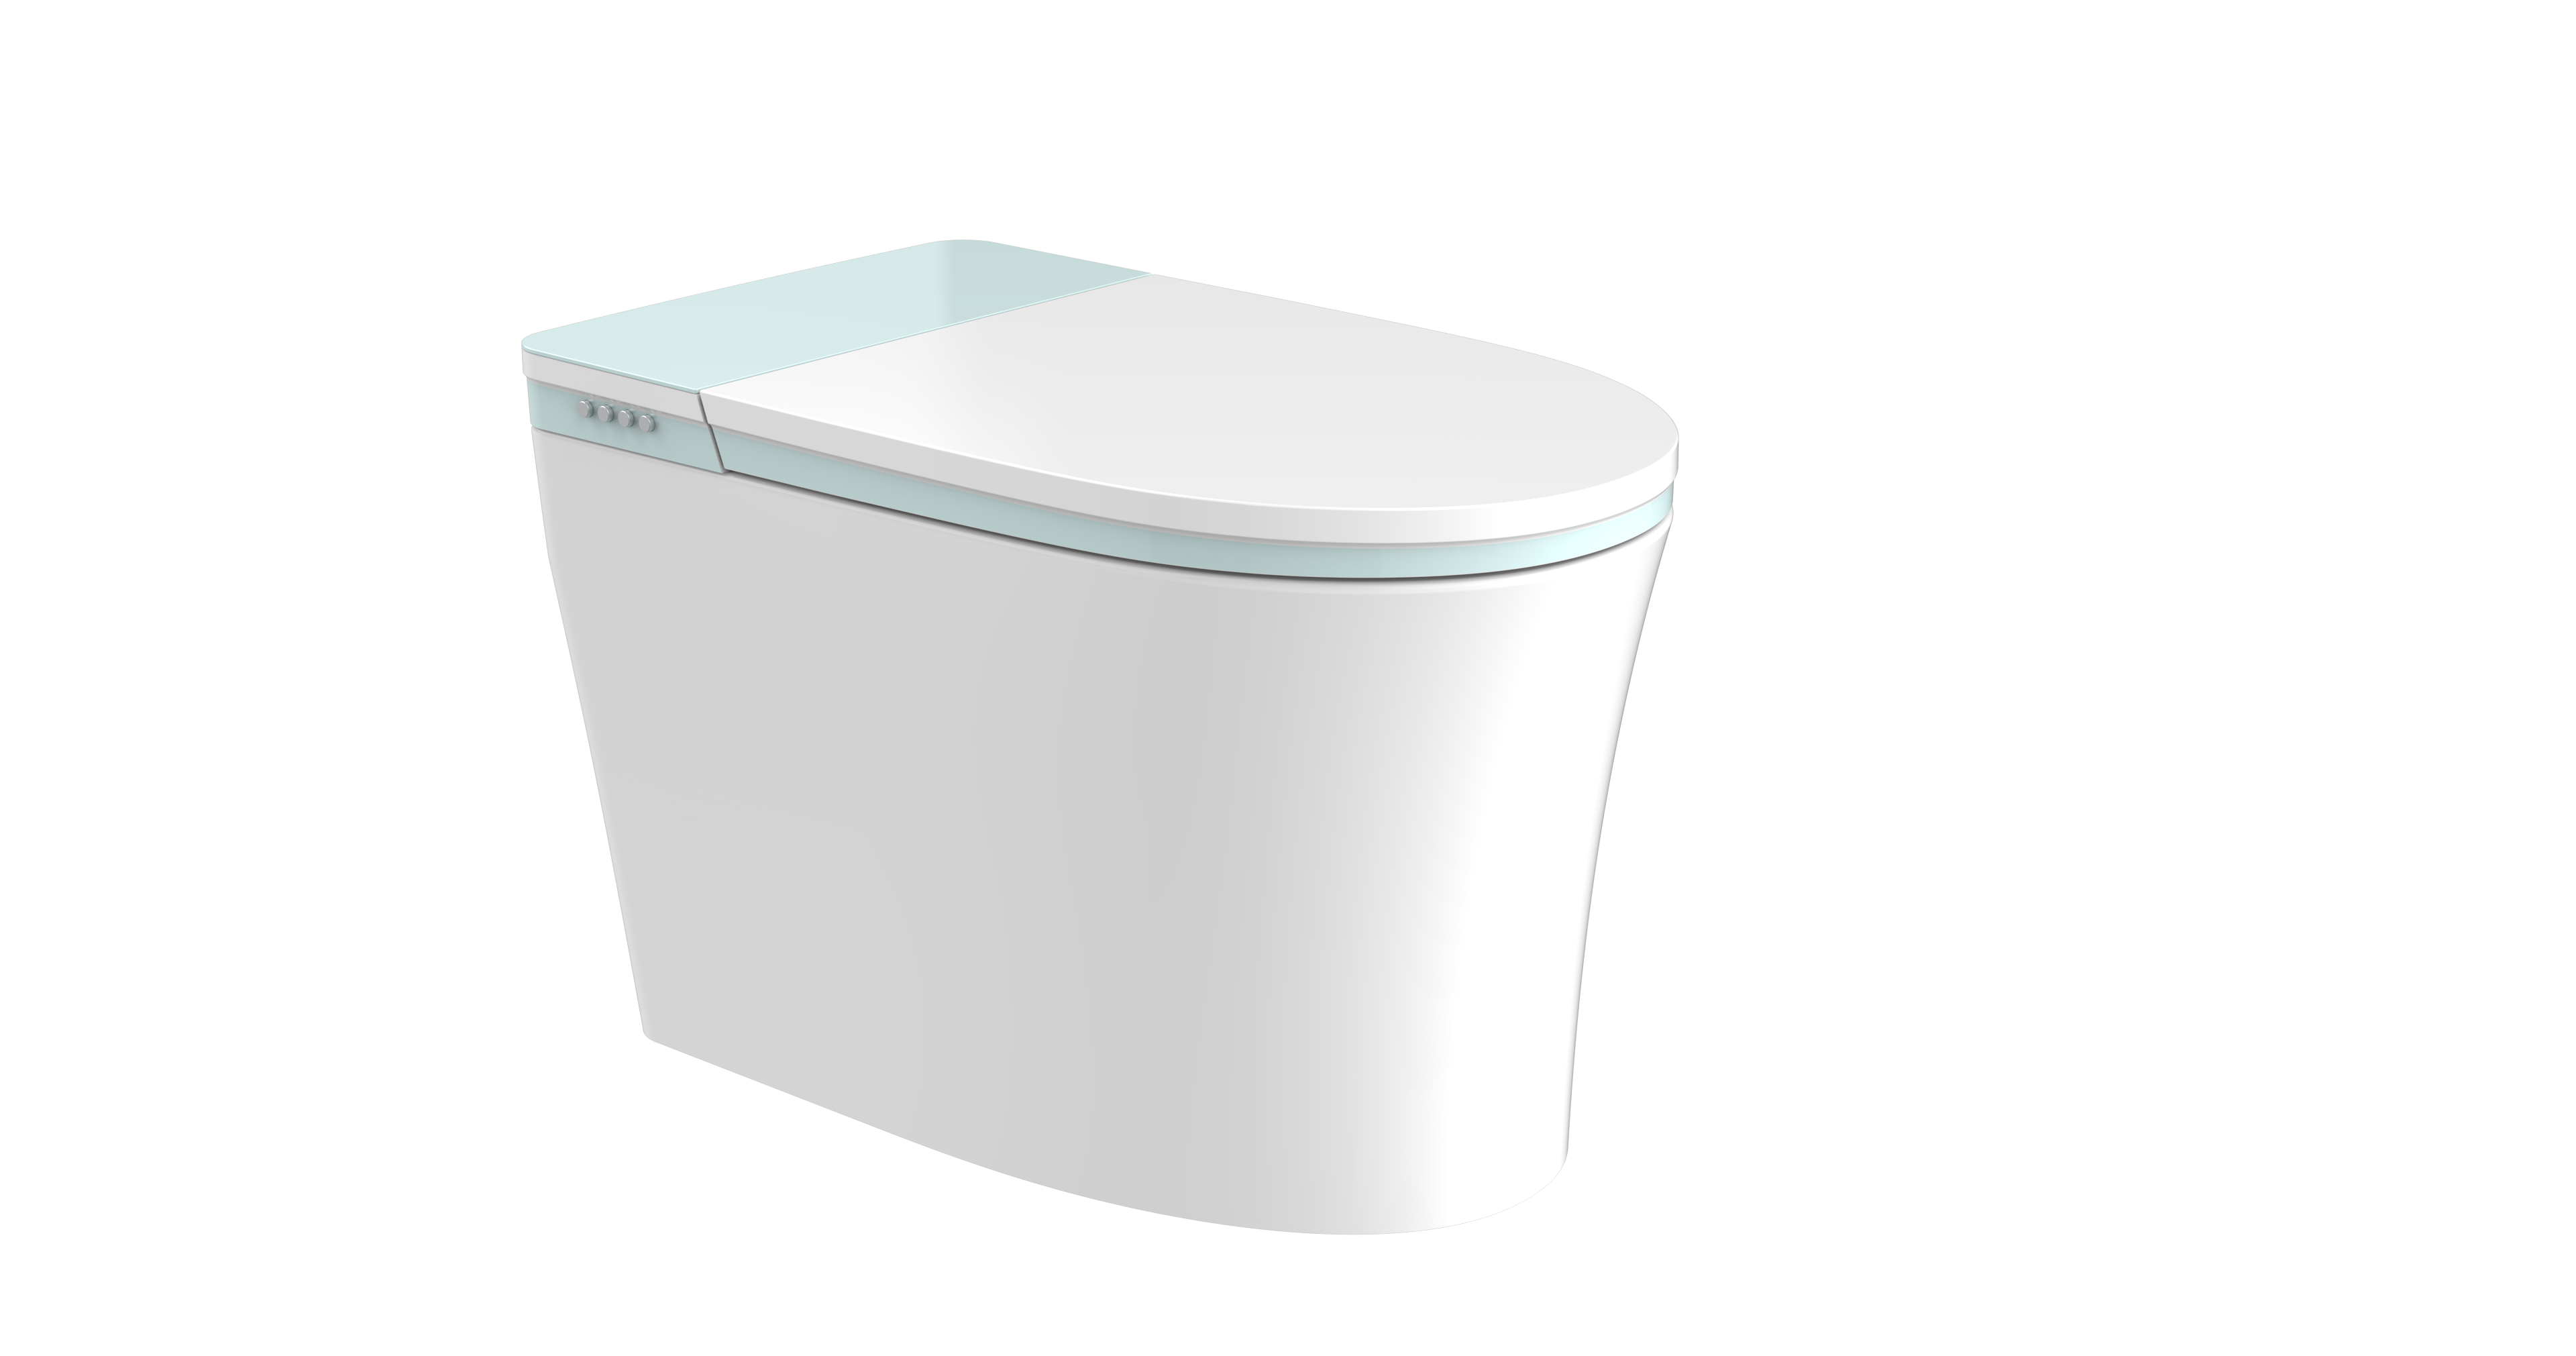 JT Accord 9011 bidet toilet with green cover